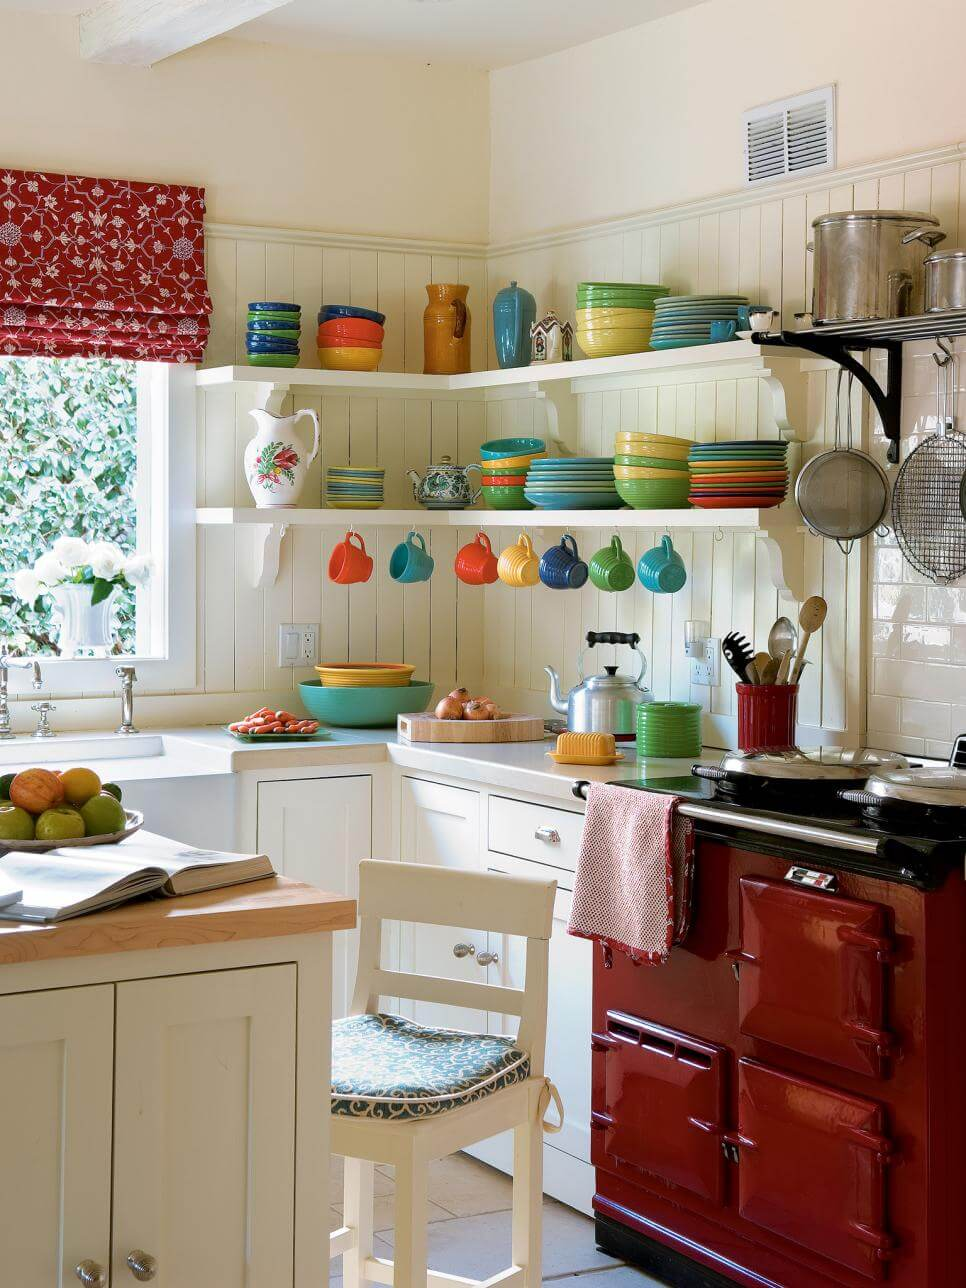 01-small-kitchen-ideas